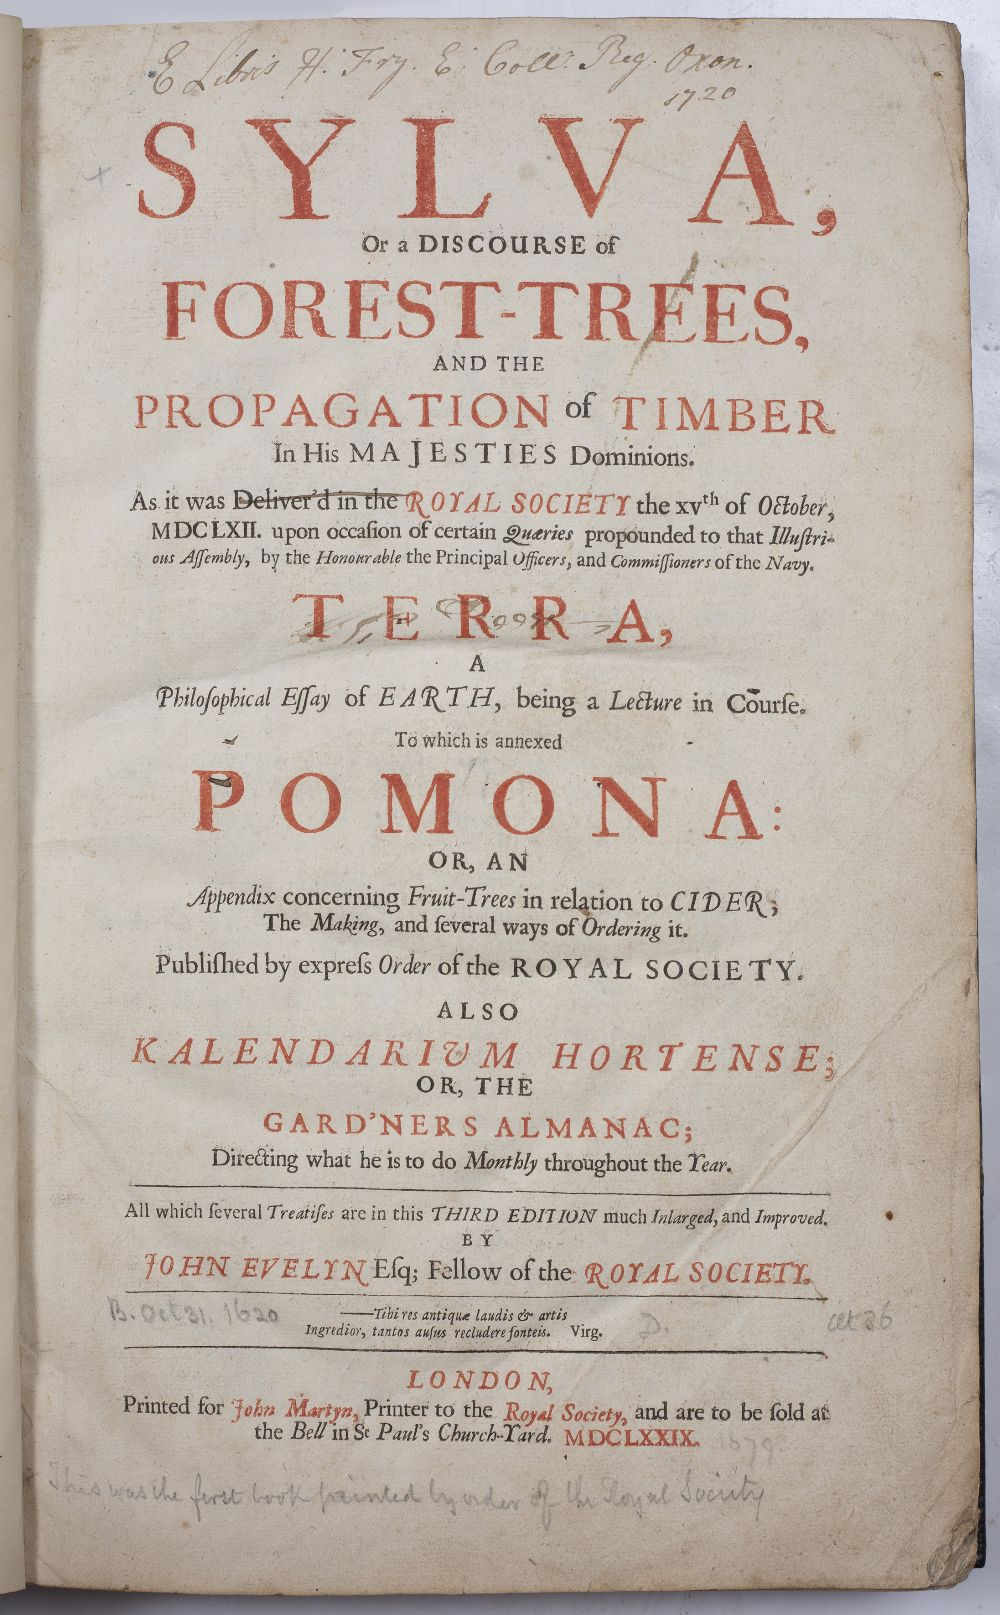 EVELYN, John, Sylva, or a Discourse of Forest Trees and the Propagation of Timber in His Majesties - Image 4 of 4